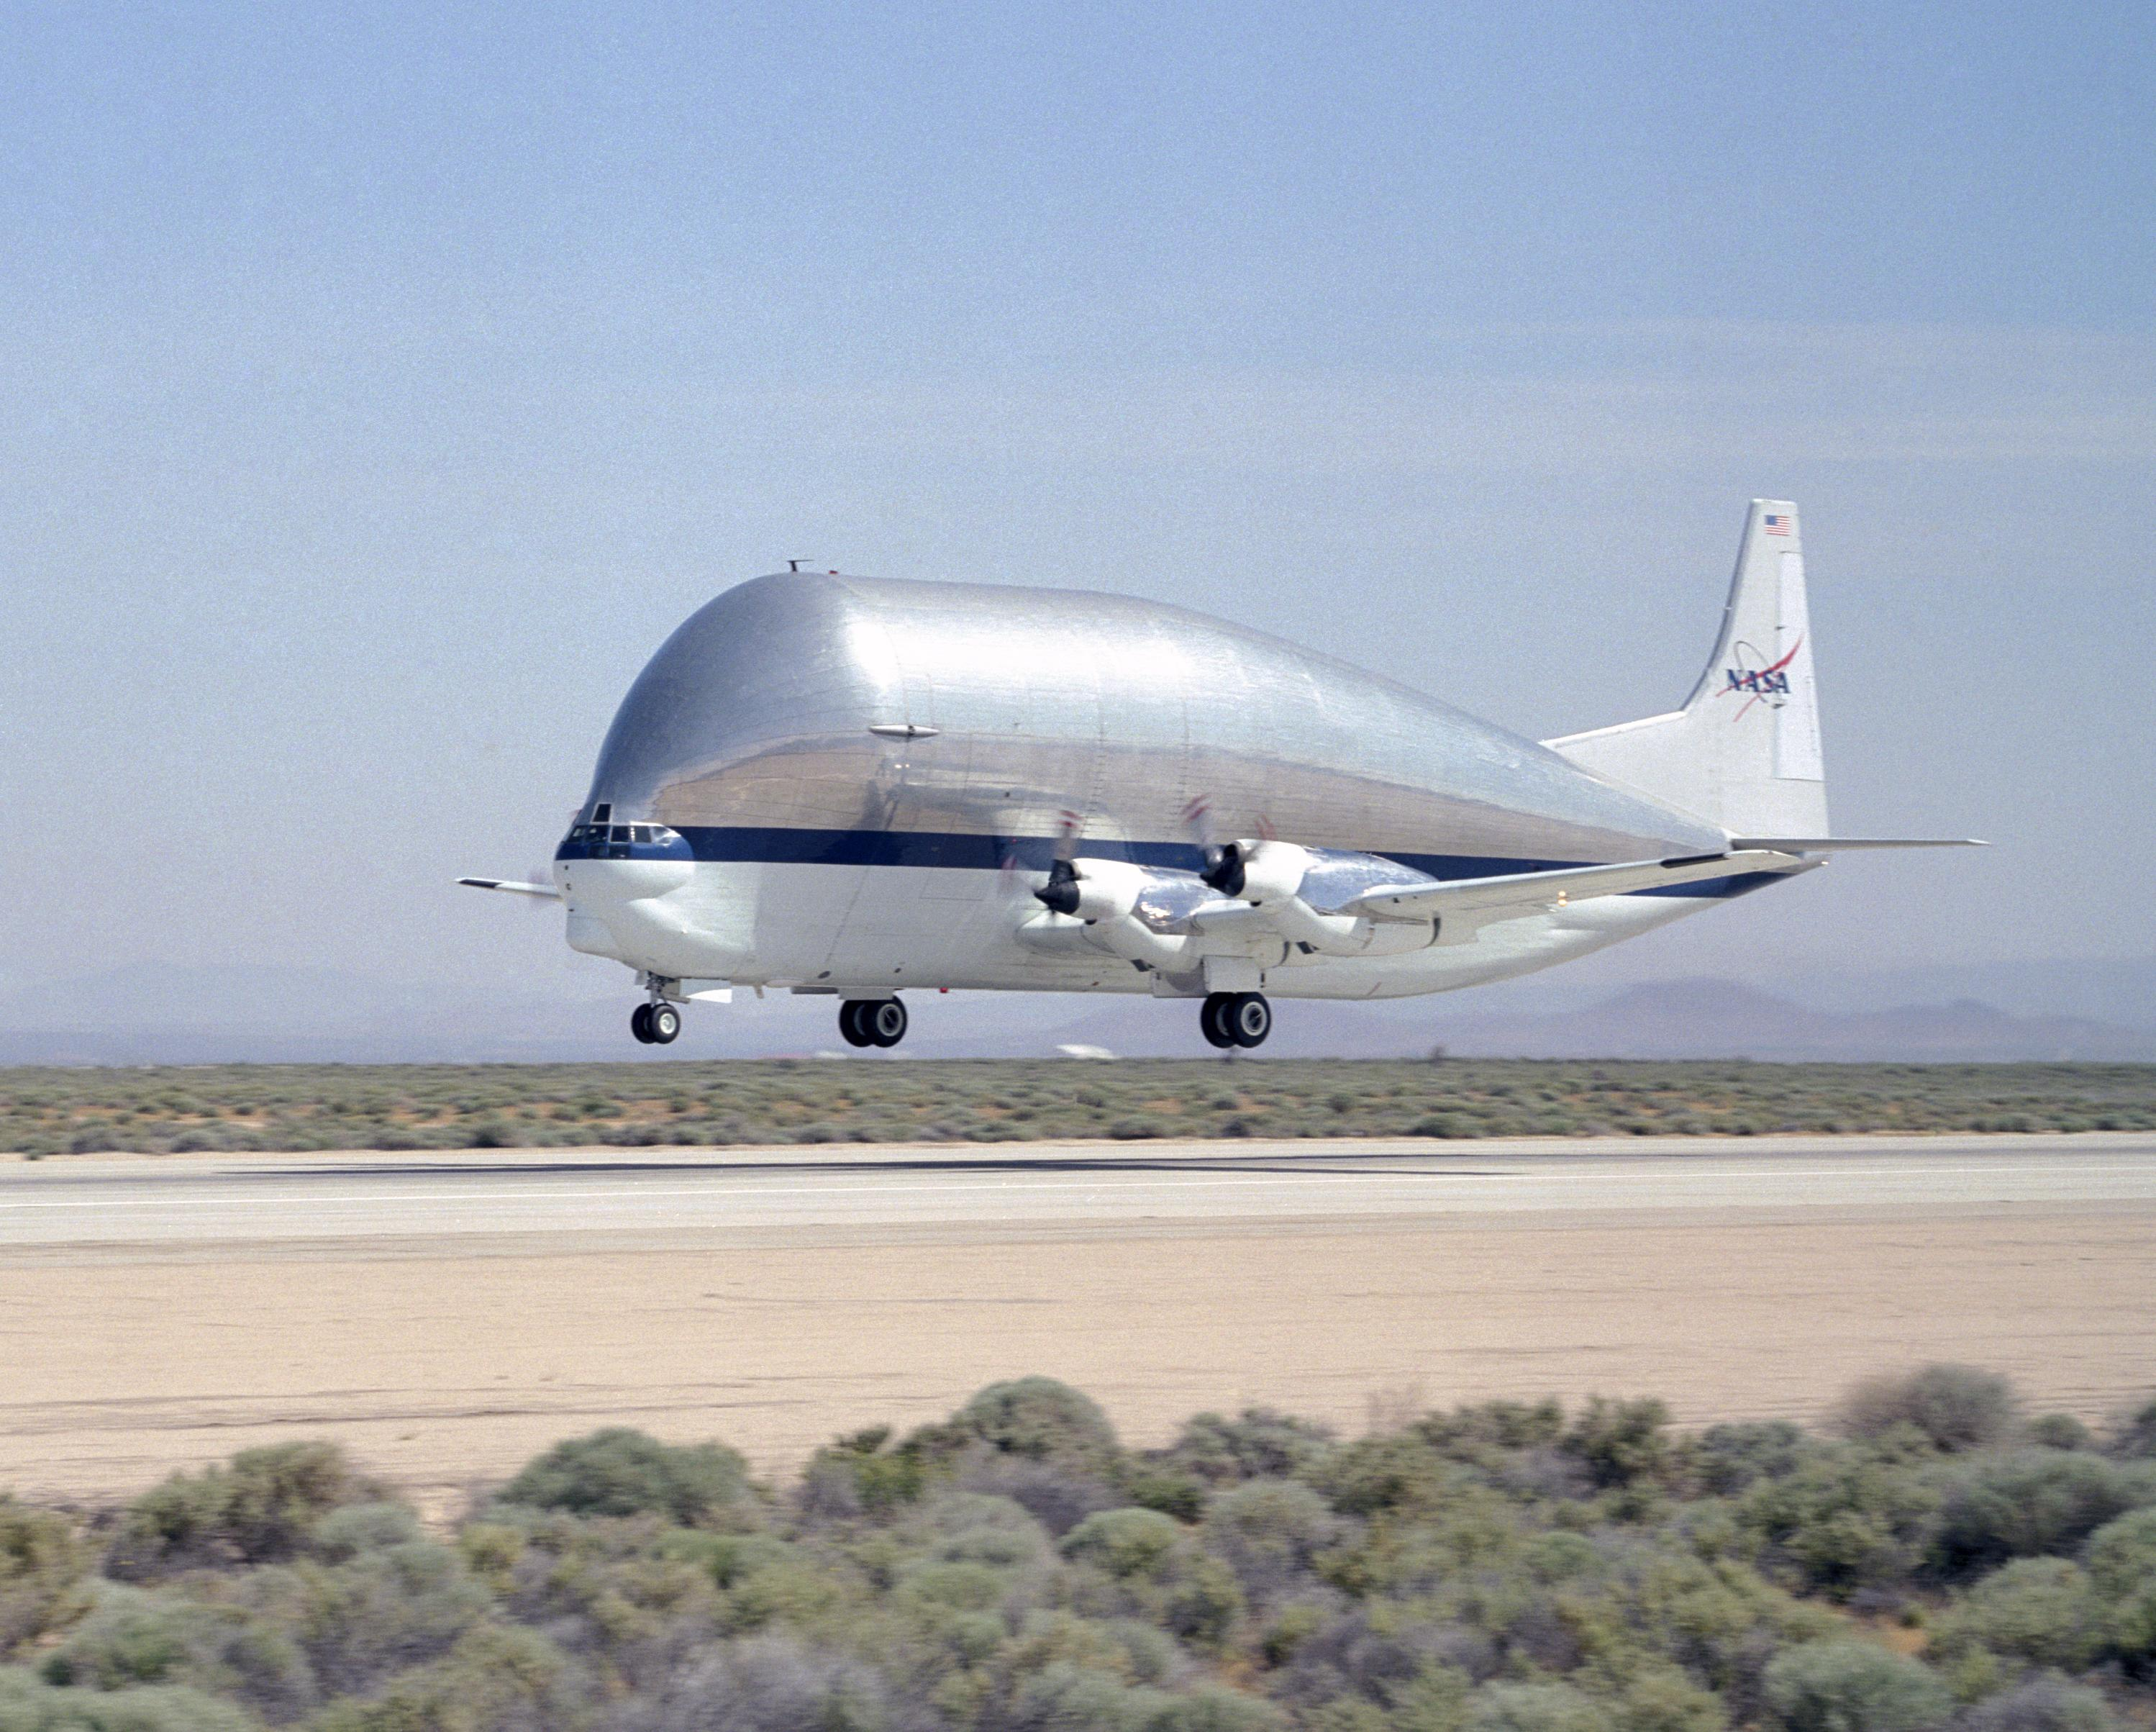 Super Guppy Lifts Off the Runway